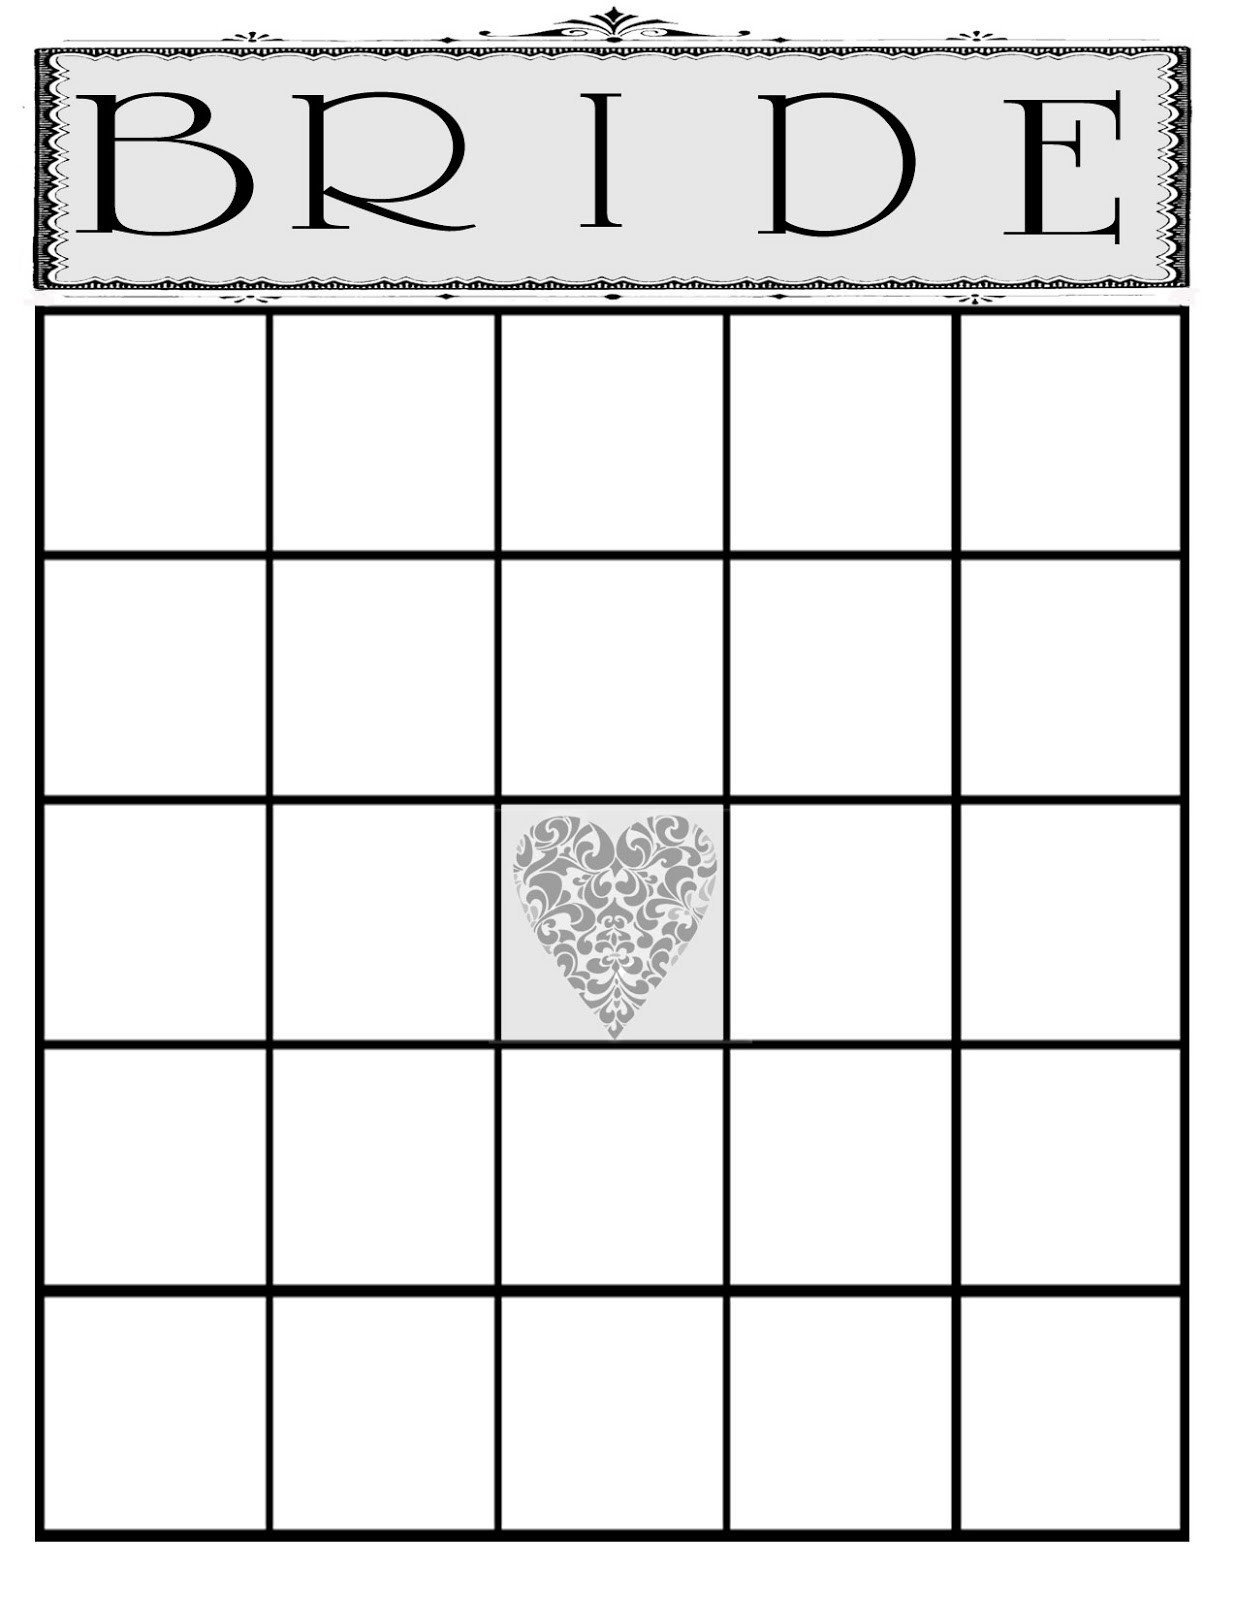 Bridal Bingo Free Template Blank the Creative Pointe A Beautiful Bridal Shower and A